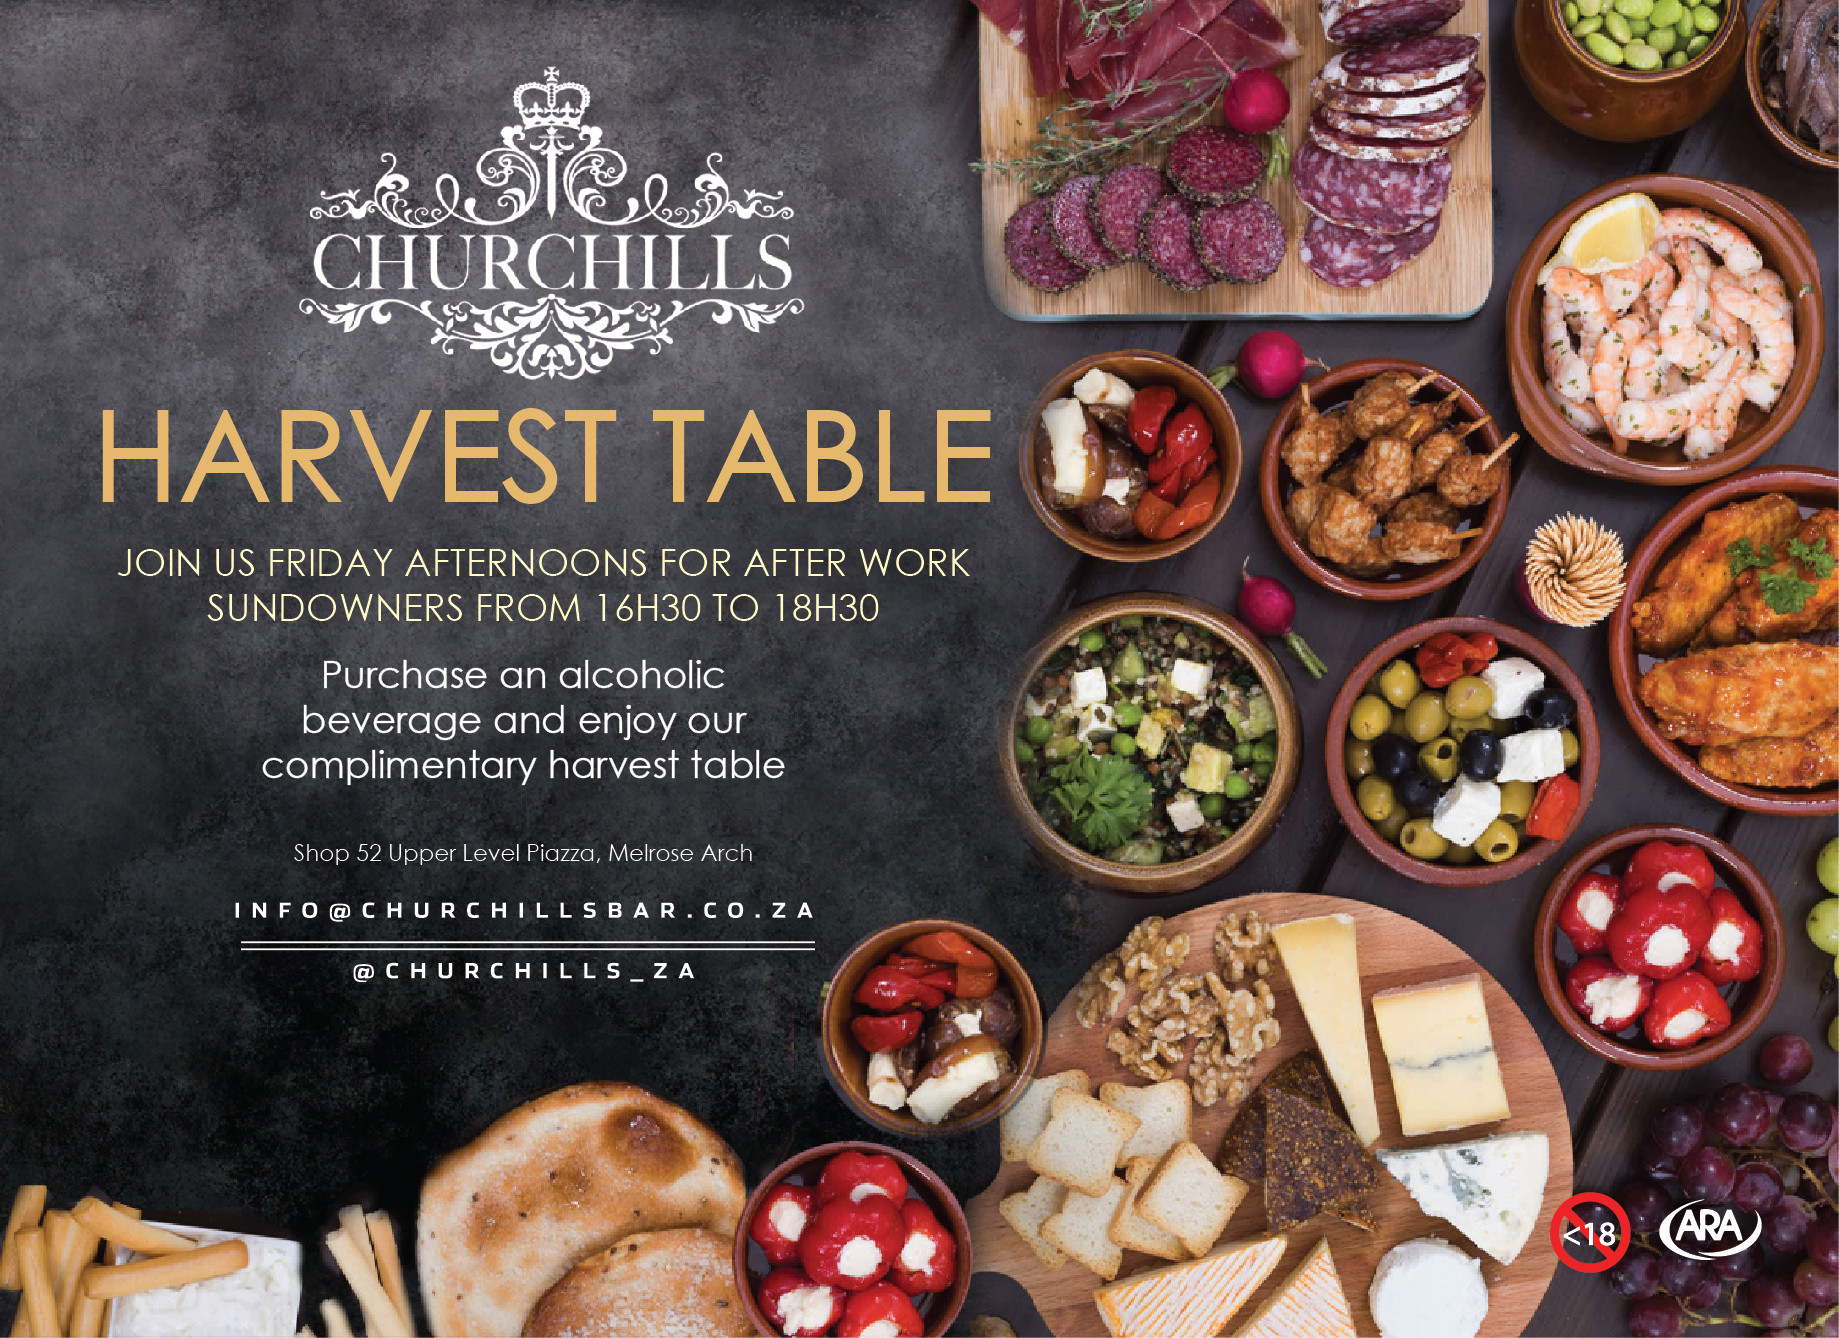 Friday is Harvest Table time at Churchills